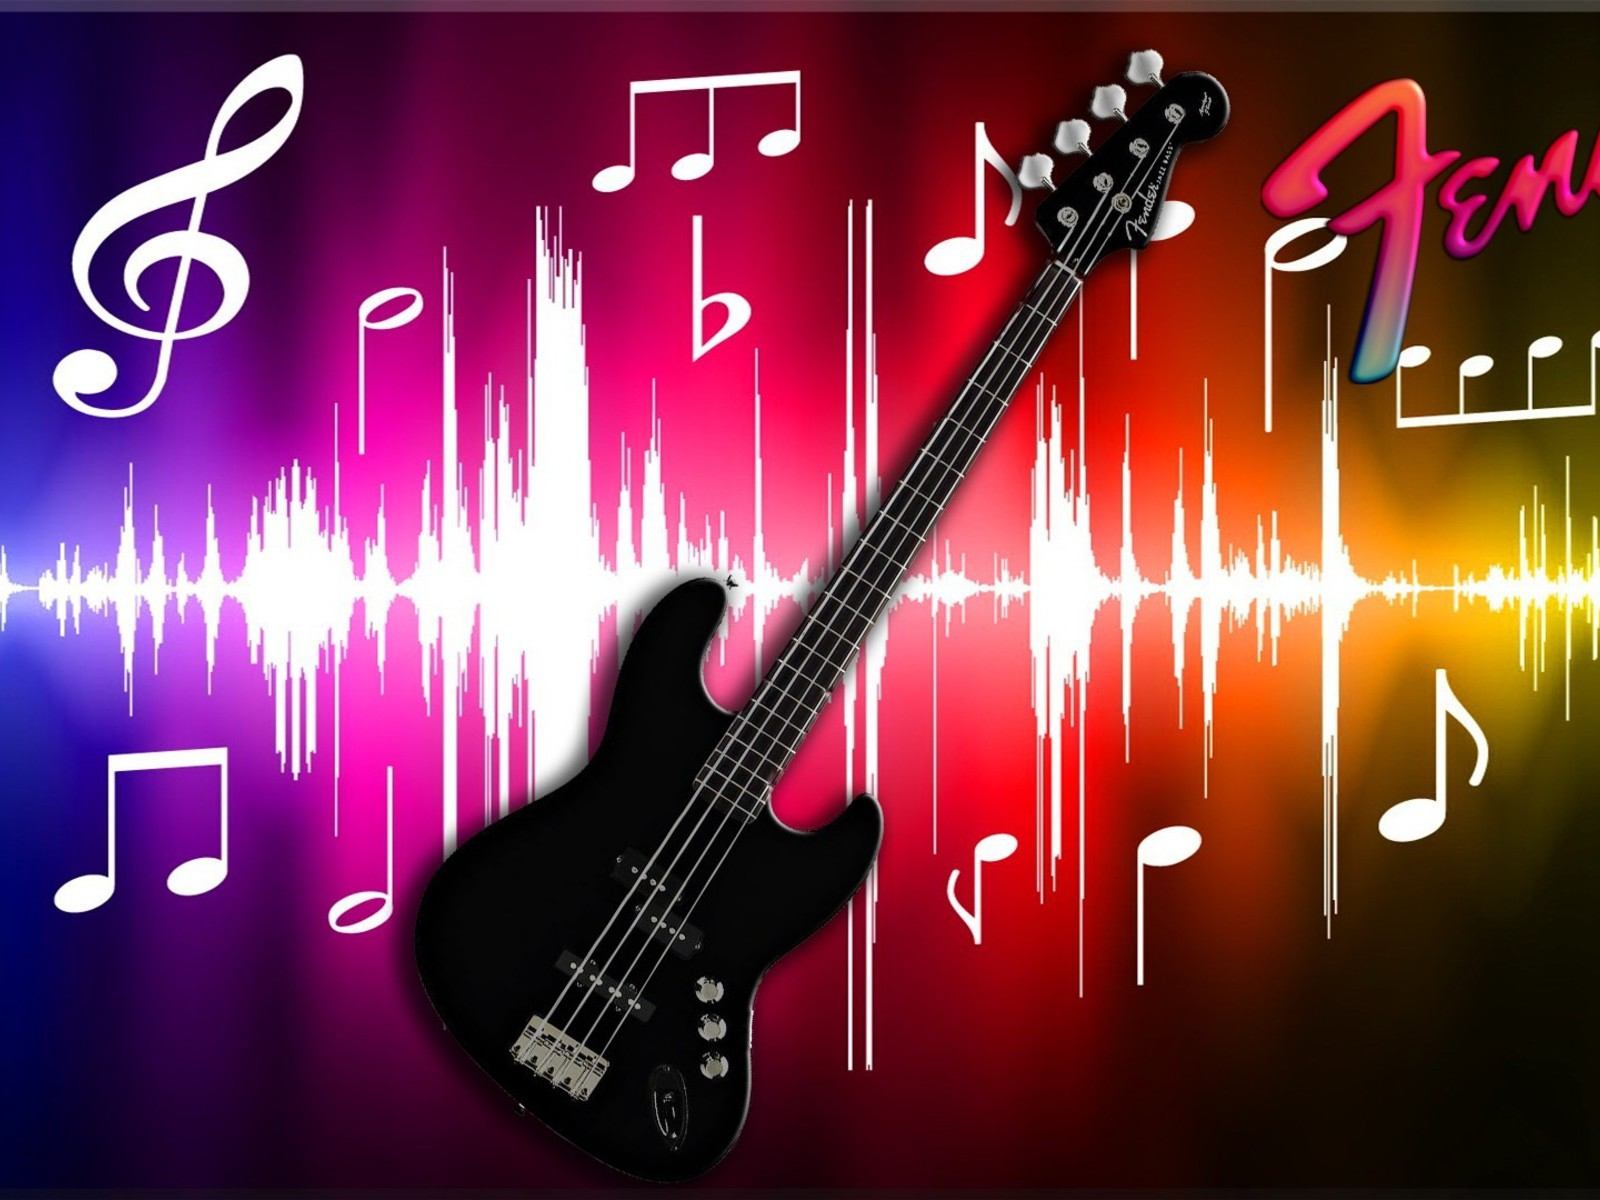 Bass Guitar Wallpaper Free Download wallpaperwiki